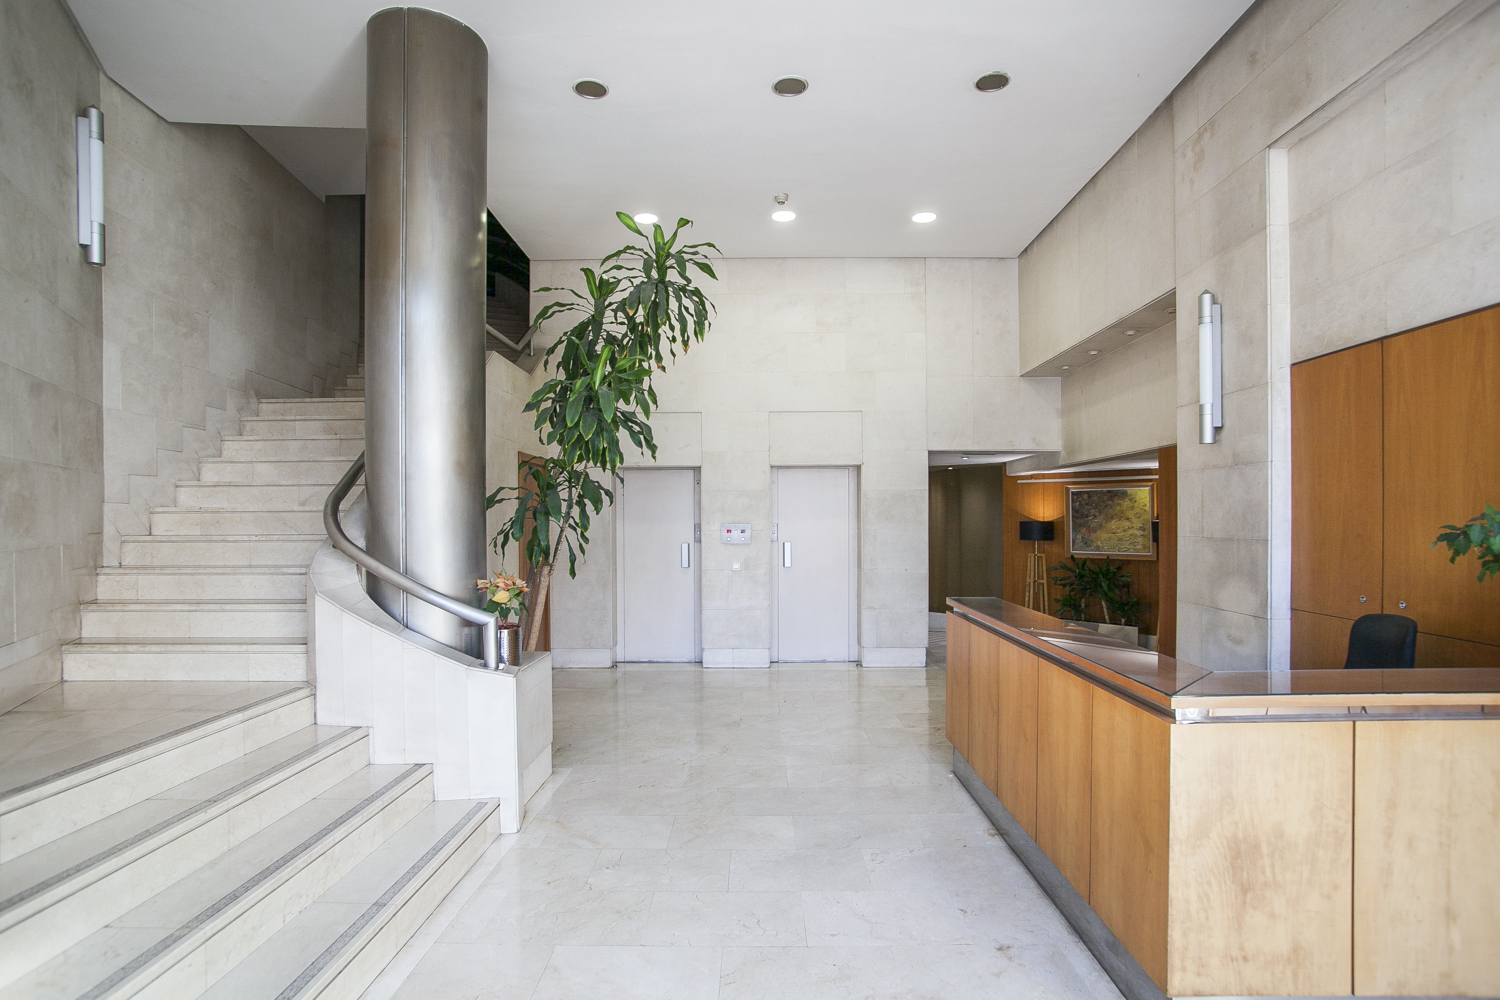 Furnished 1 bedroom flat for rent paseo de gracia barcelona for Chantry flats cabins rental